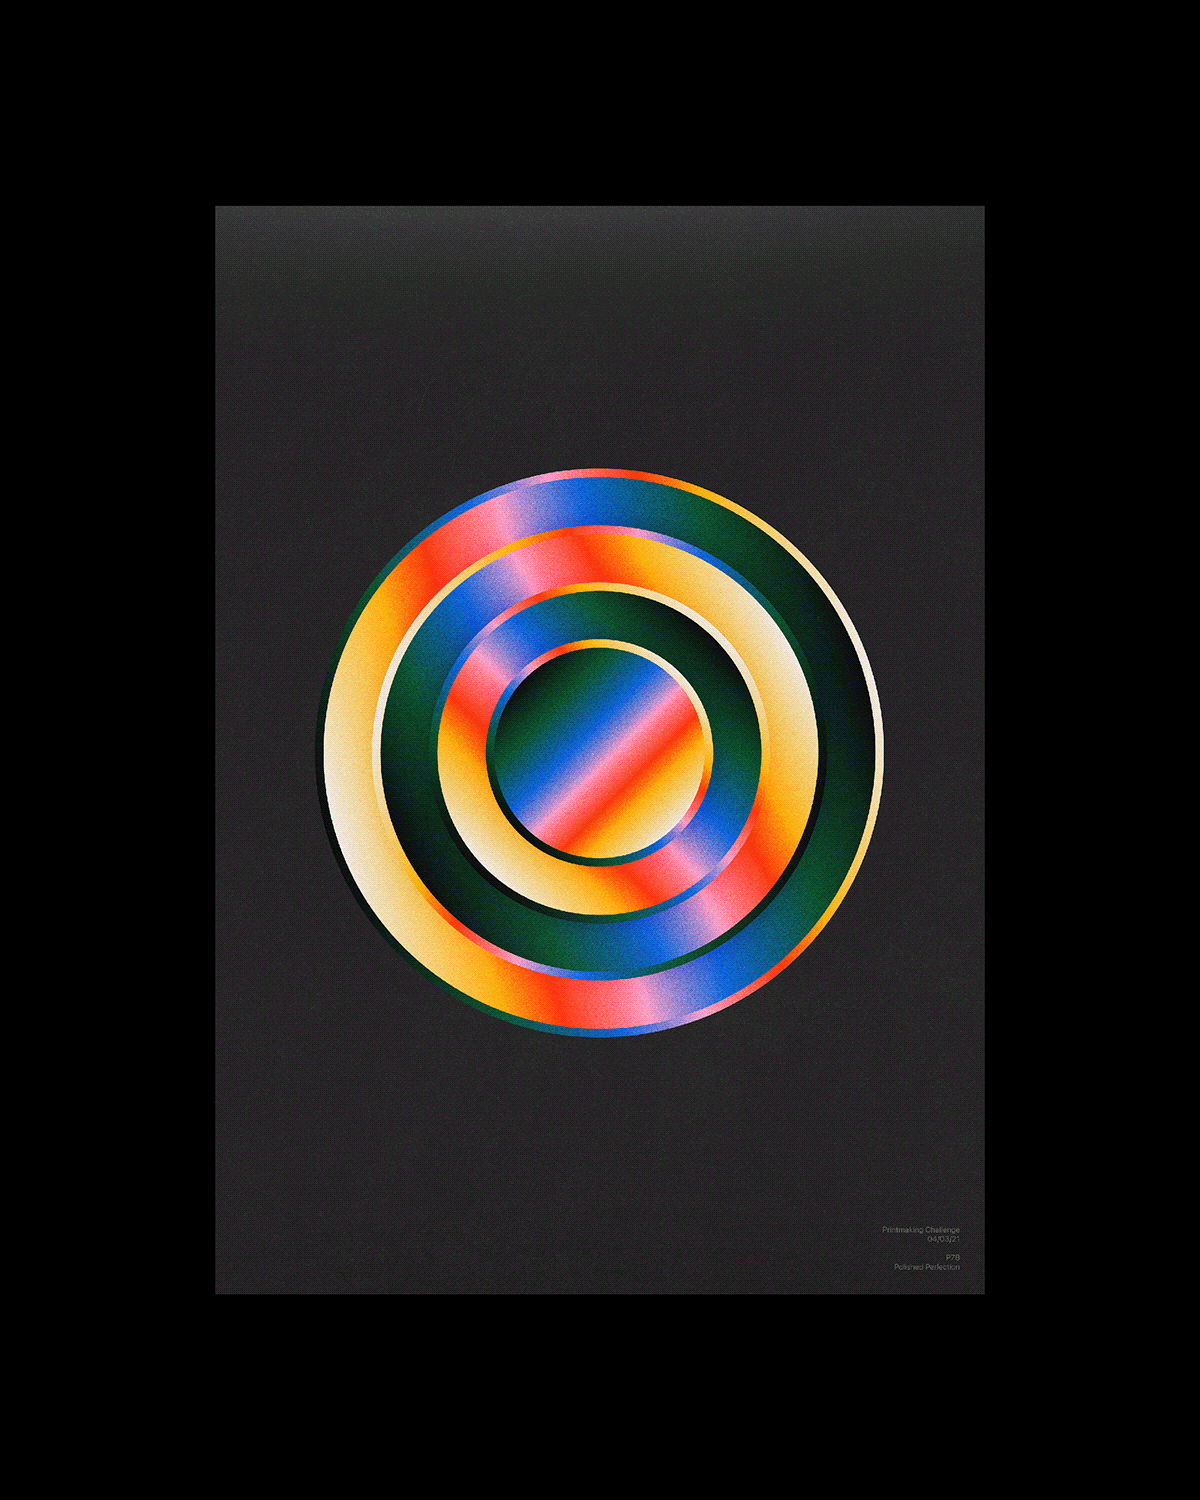 abstract art challenge color contemporary geometric poster print typography   visual